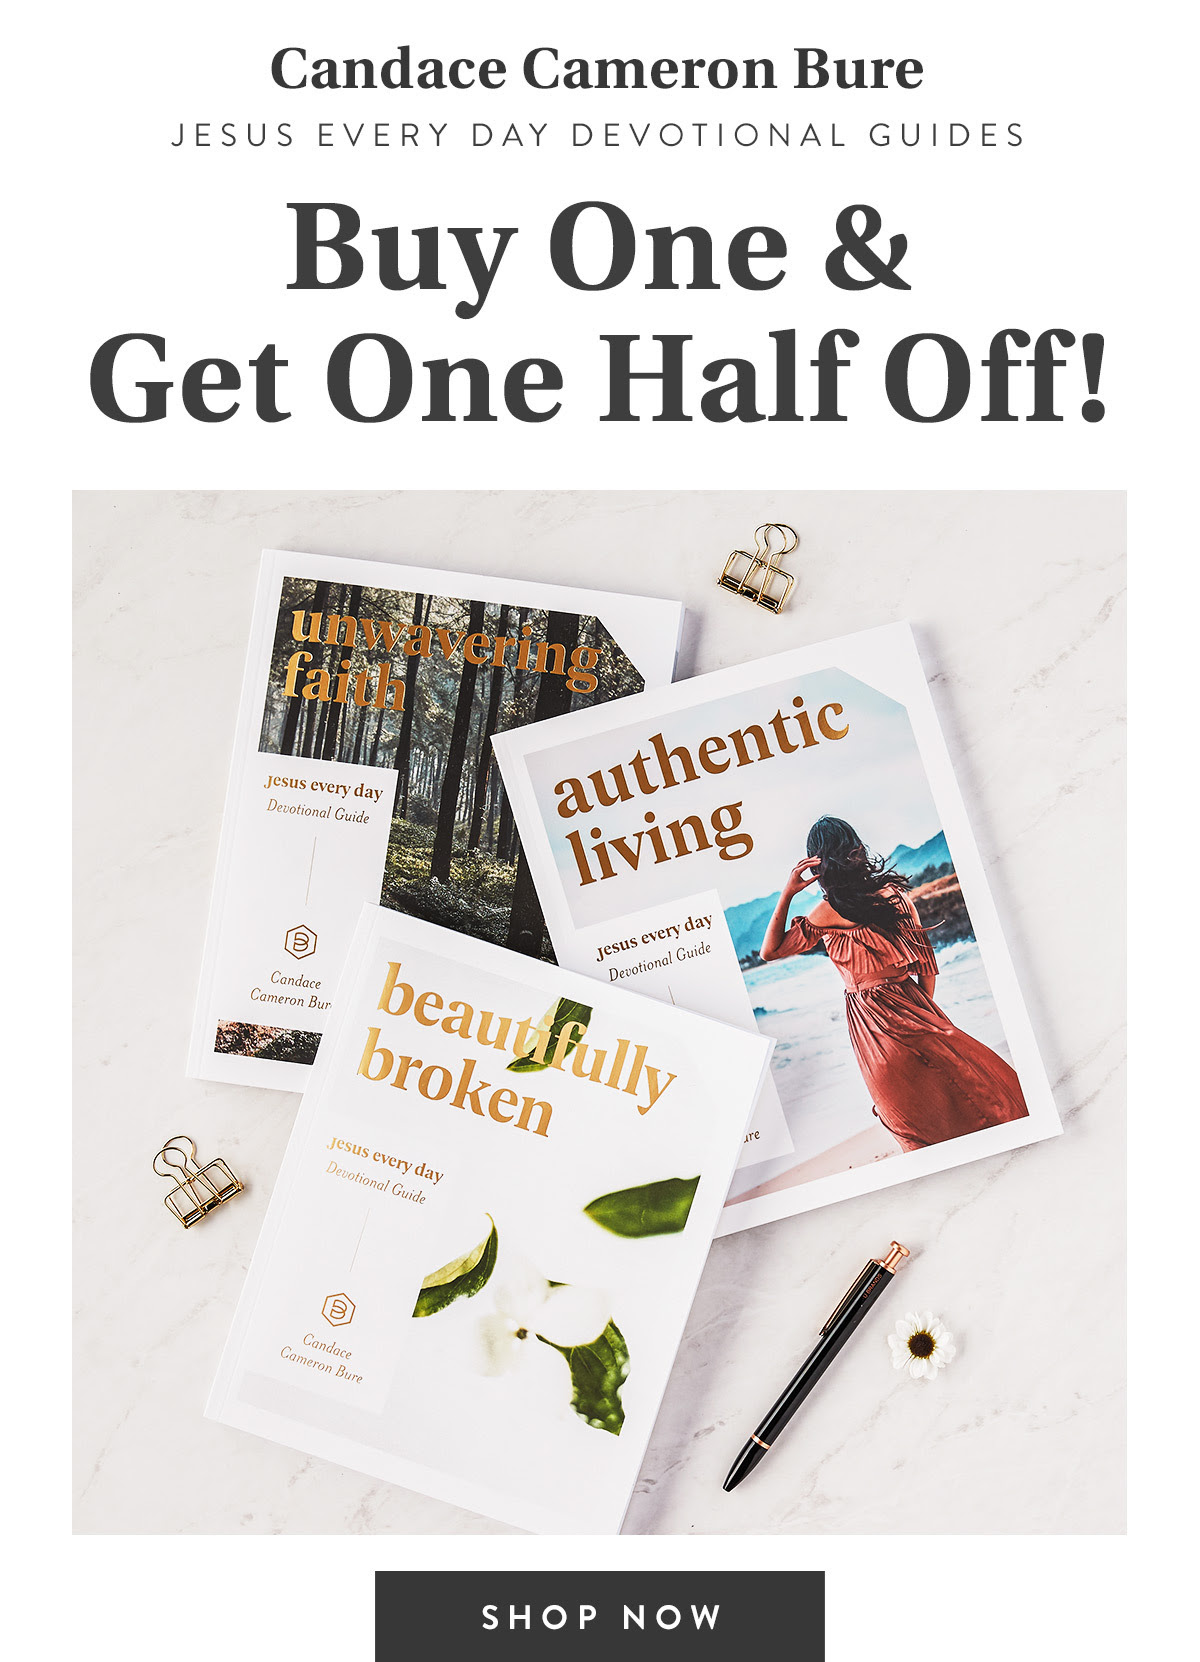 CCB Jesus Every Day Devotional Guides Buy One & Get One Half OFF!